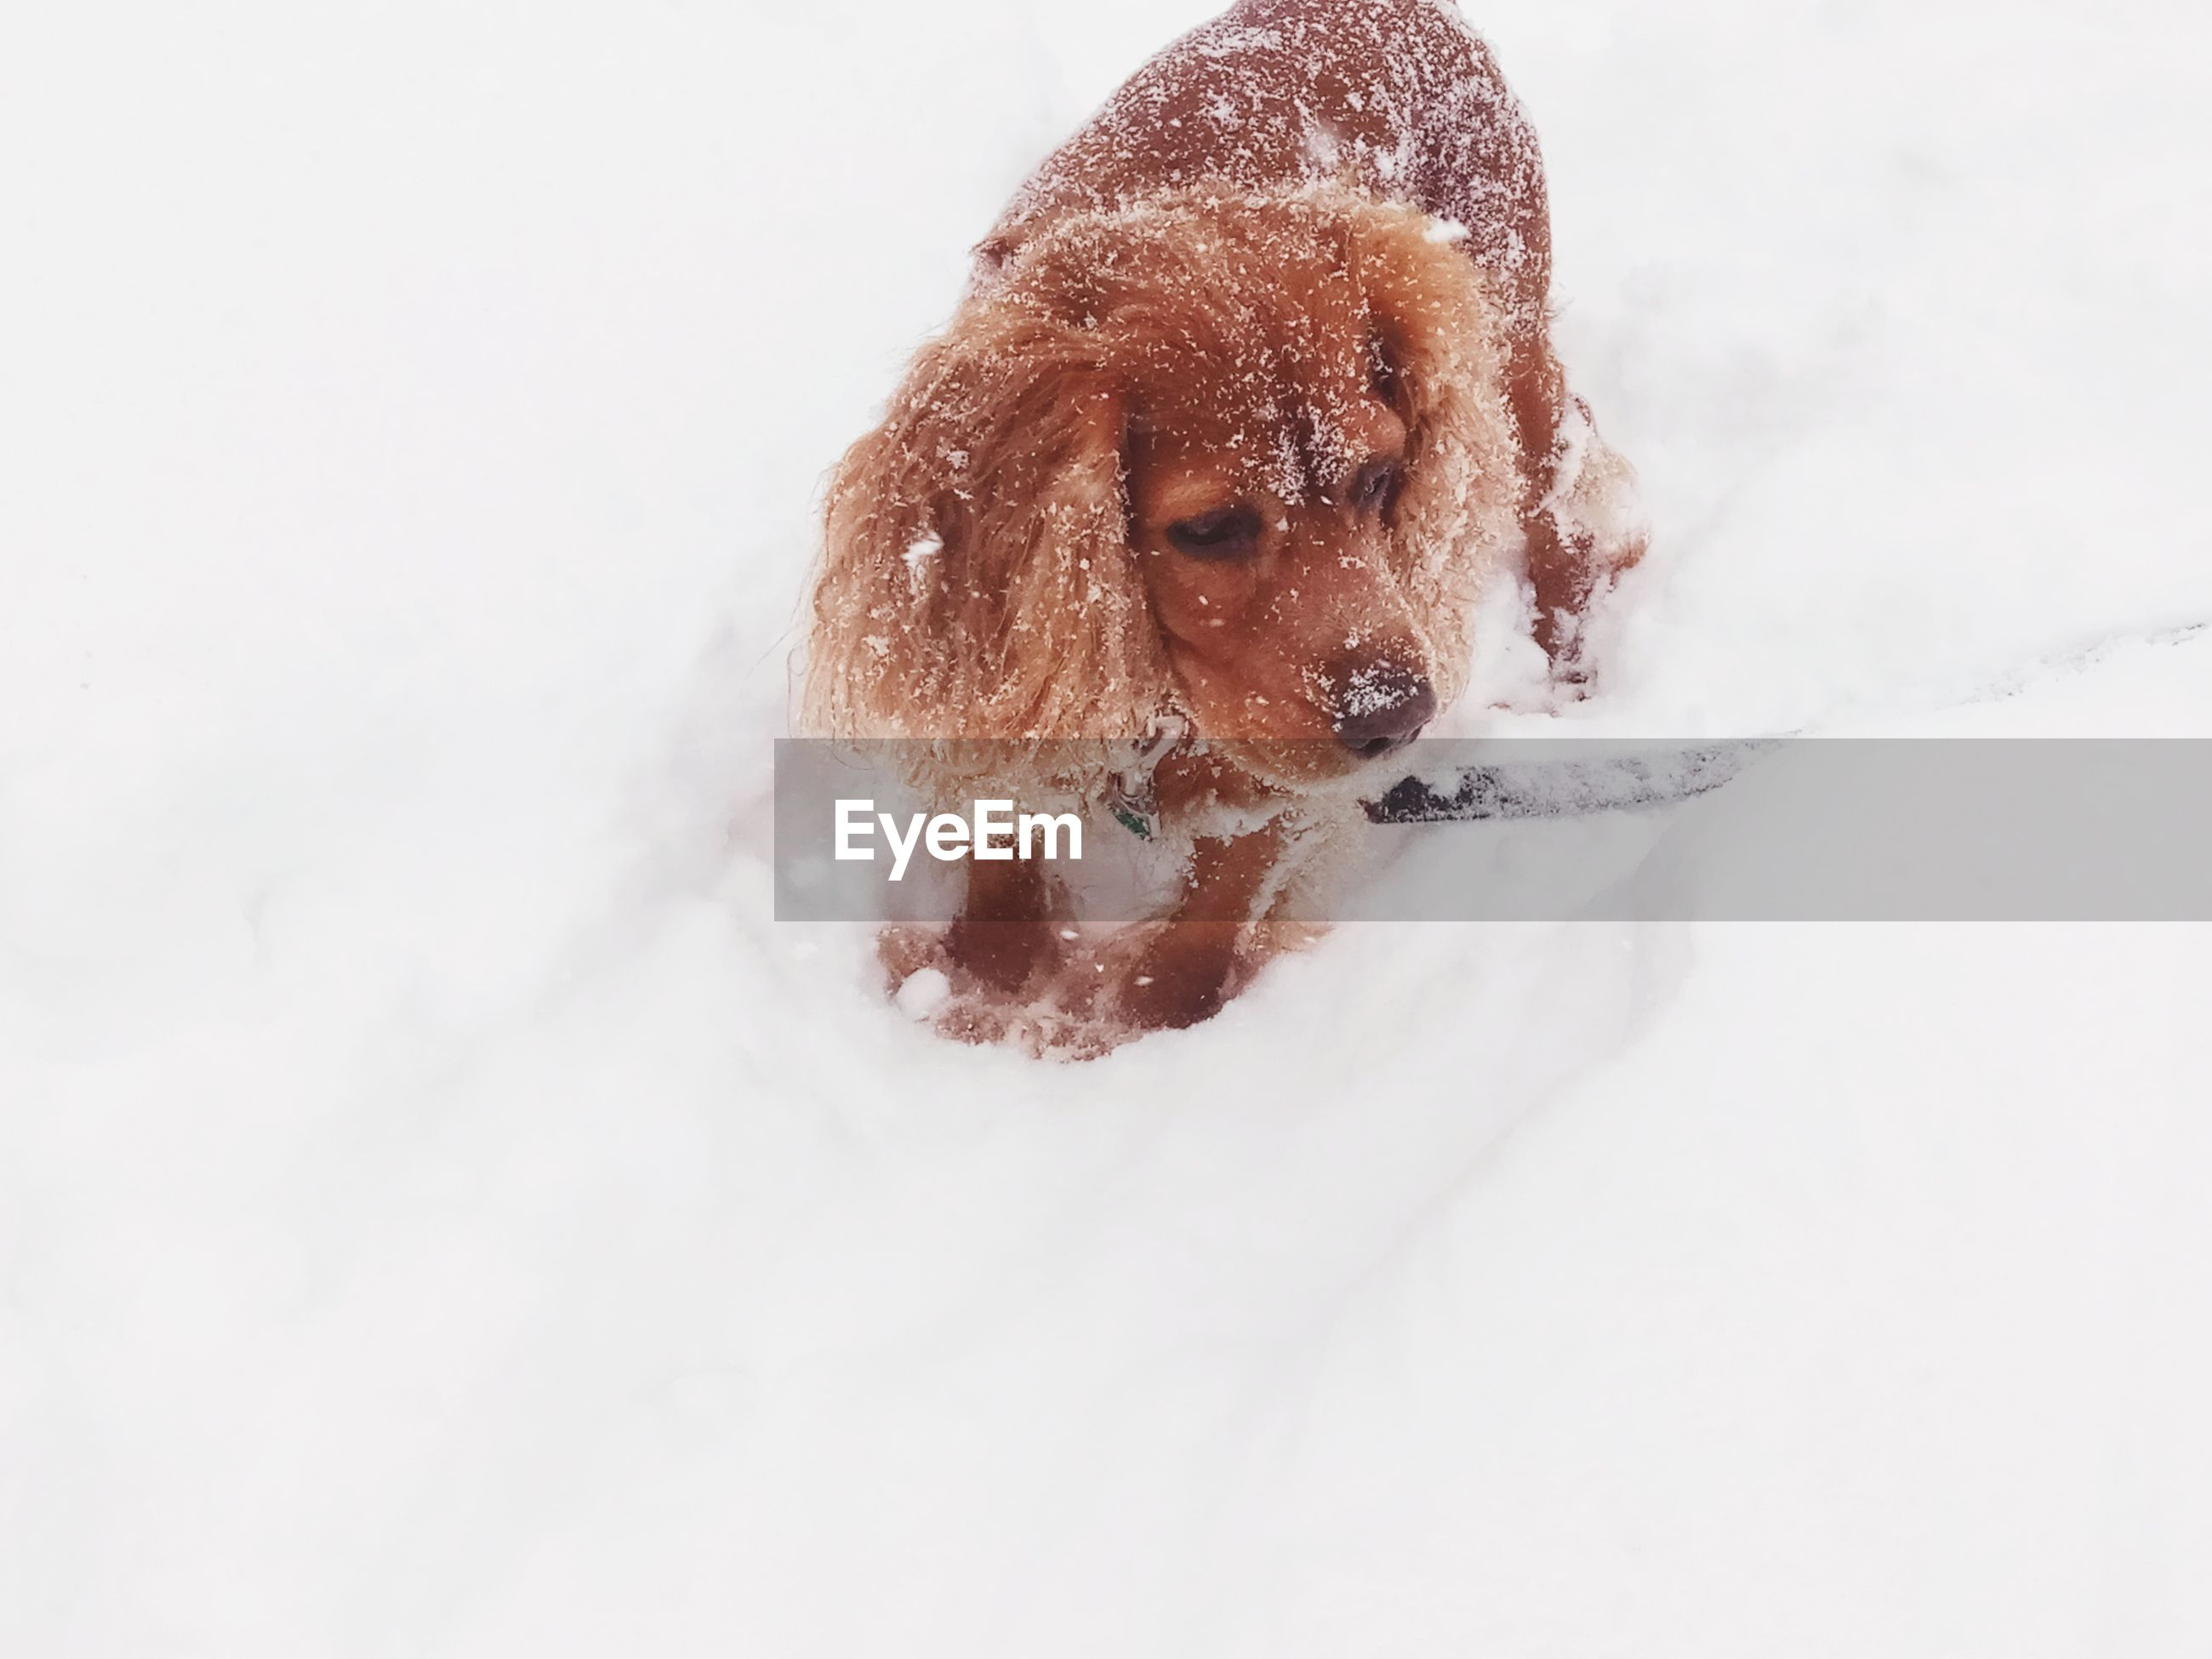 DOG IN SNOW ON FIELD